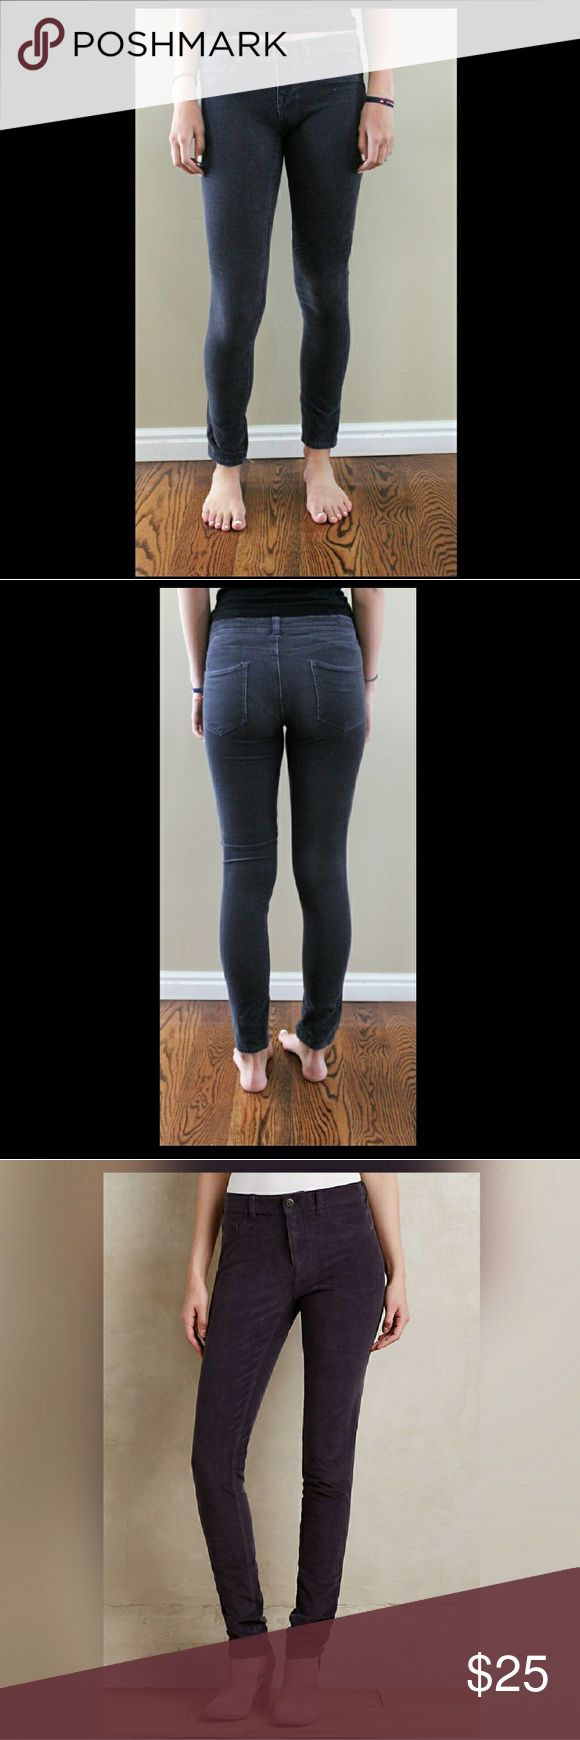 """Pilcro and The Letterpress Grey Legging Jeans A sleek and straight corduroy legging complete with give galore. From Pilcro, an Anthropologie-exclusive collection crafted from the highest quality denim. Model is 5'9"""" Anthropologie Jeans Skinny"""